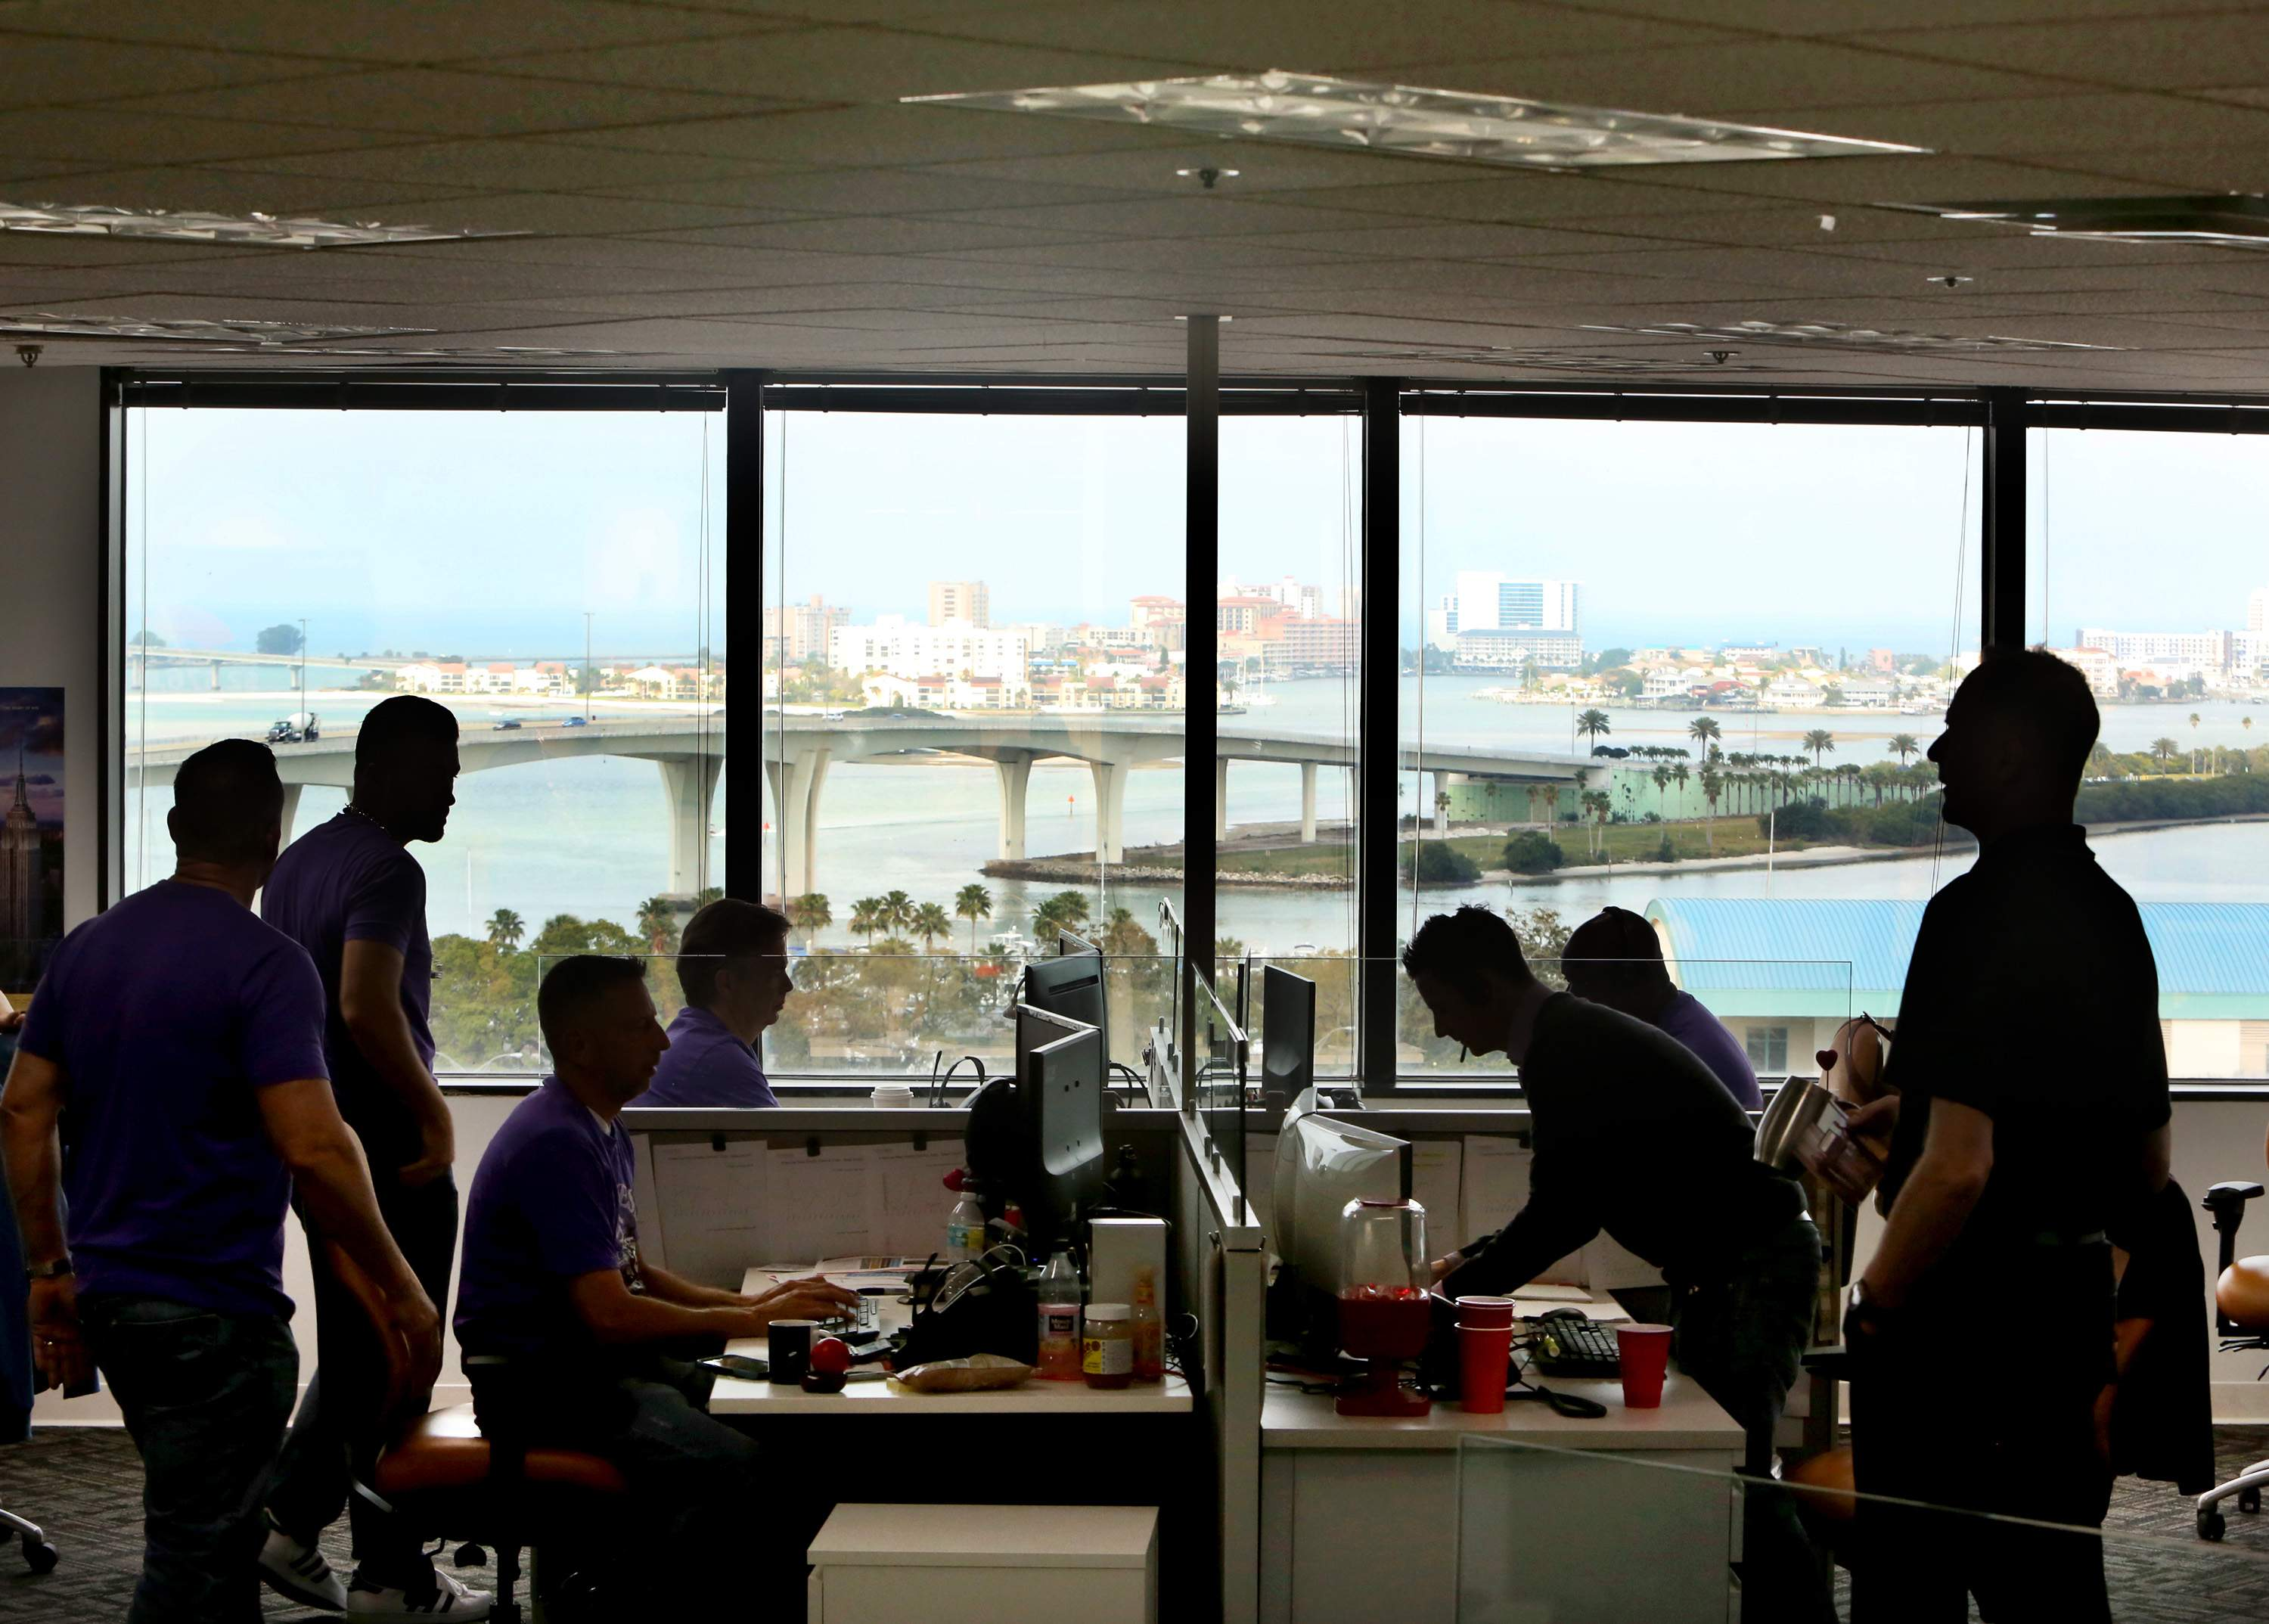 Welfont, KnowBe4, Teami and other Tampa Bay companies rank